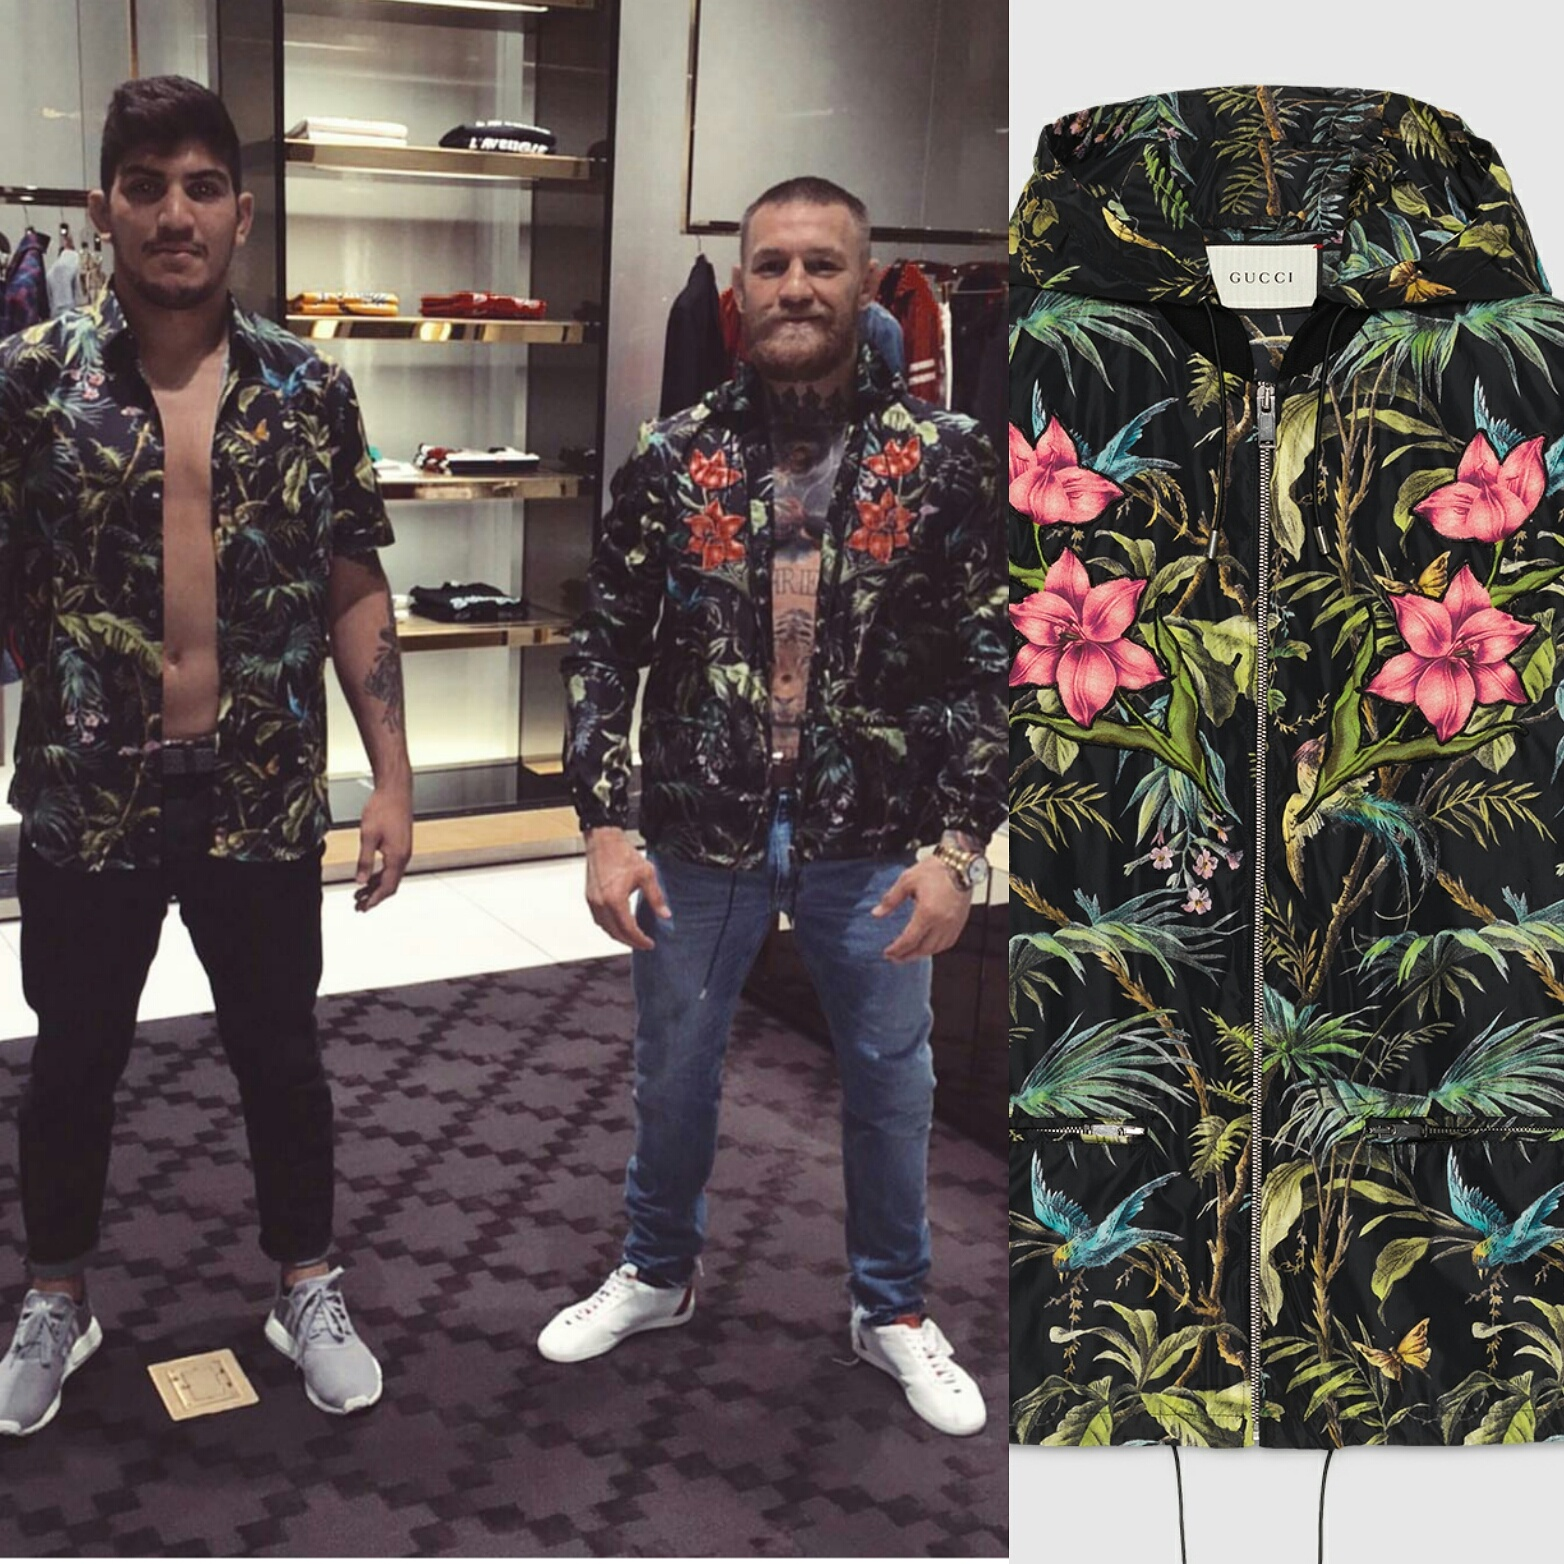 08d957682 STYLE  UFC Conor McGregor s Instagram Gucci Tropical Print Jacket